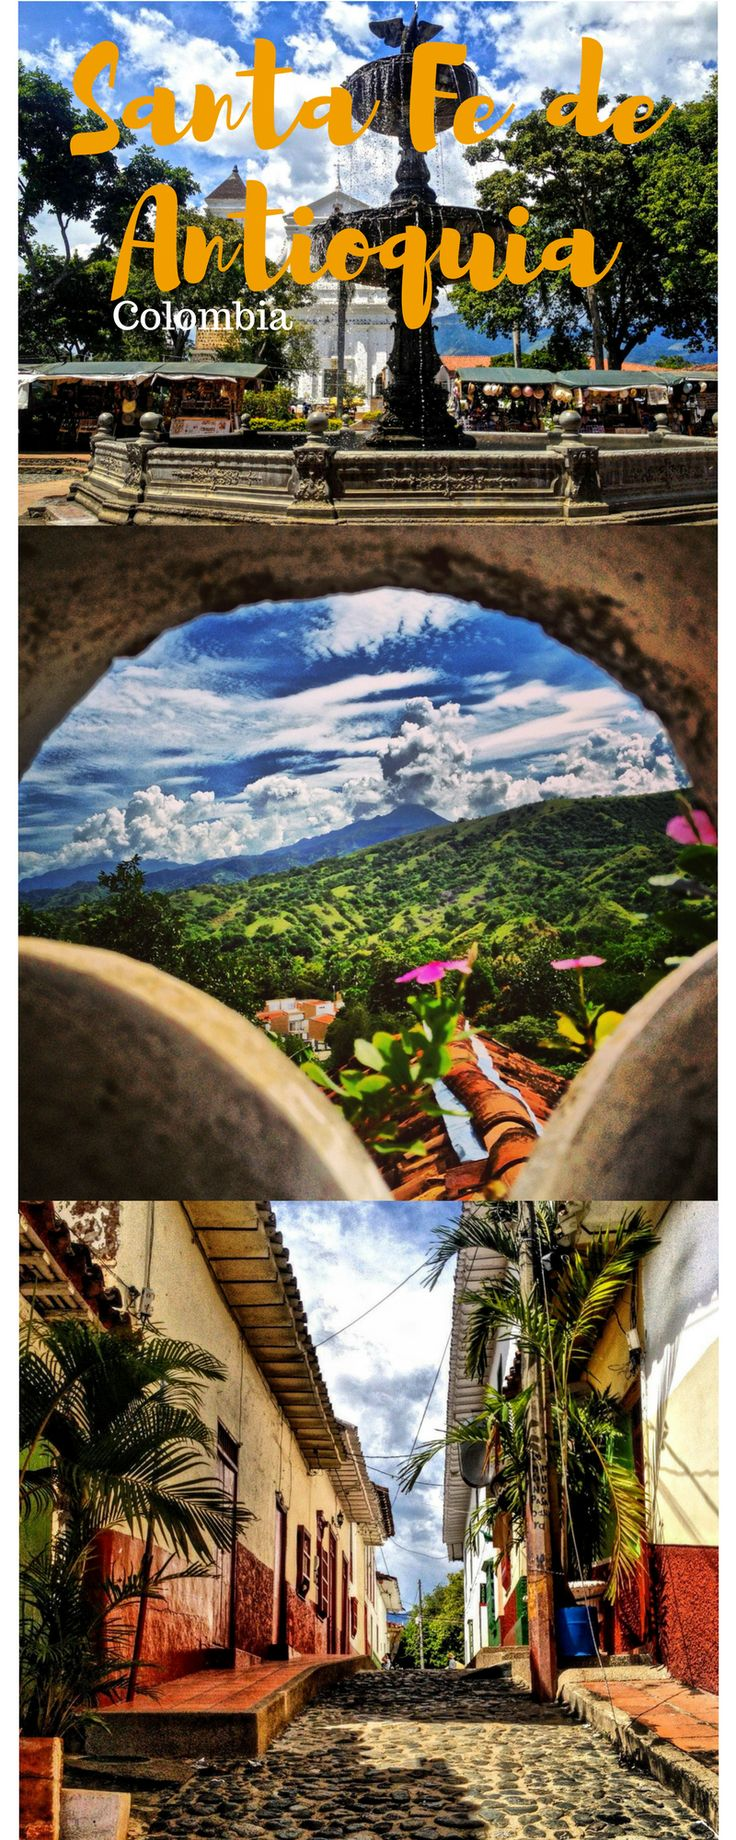 Santa Fe de Antioquia is a beautiful colonial town just about 2 hours from Medellin. The beautiful city and it`s surrounding make this place a perfect daytrip from Medellin #Medellin #santafe #antioquia #colonialtown #travel #backpacking #daytrip